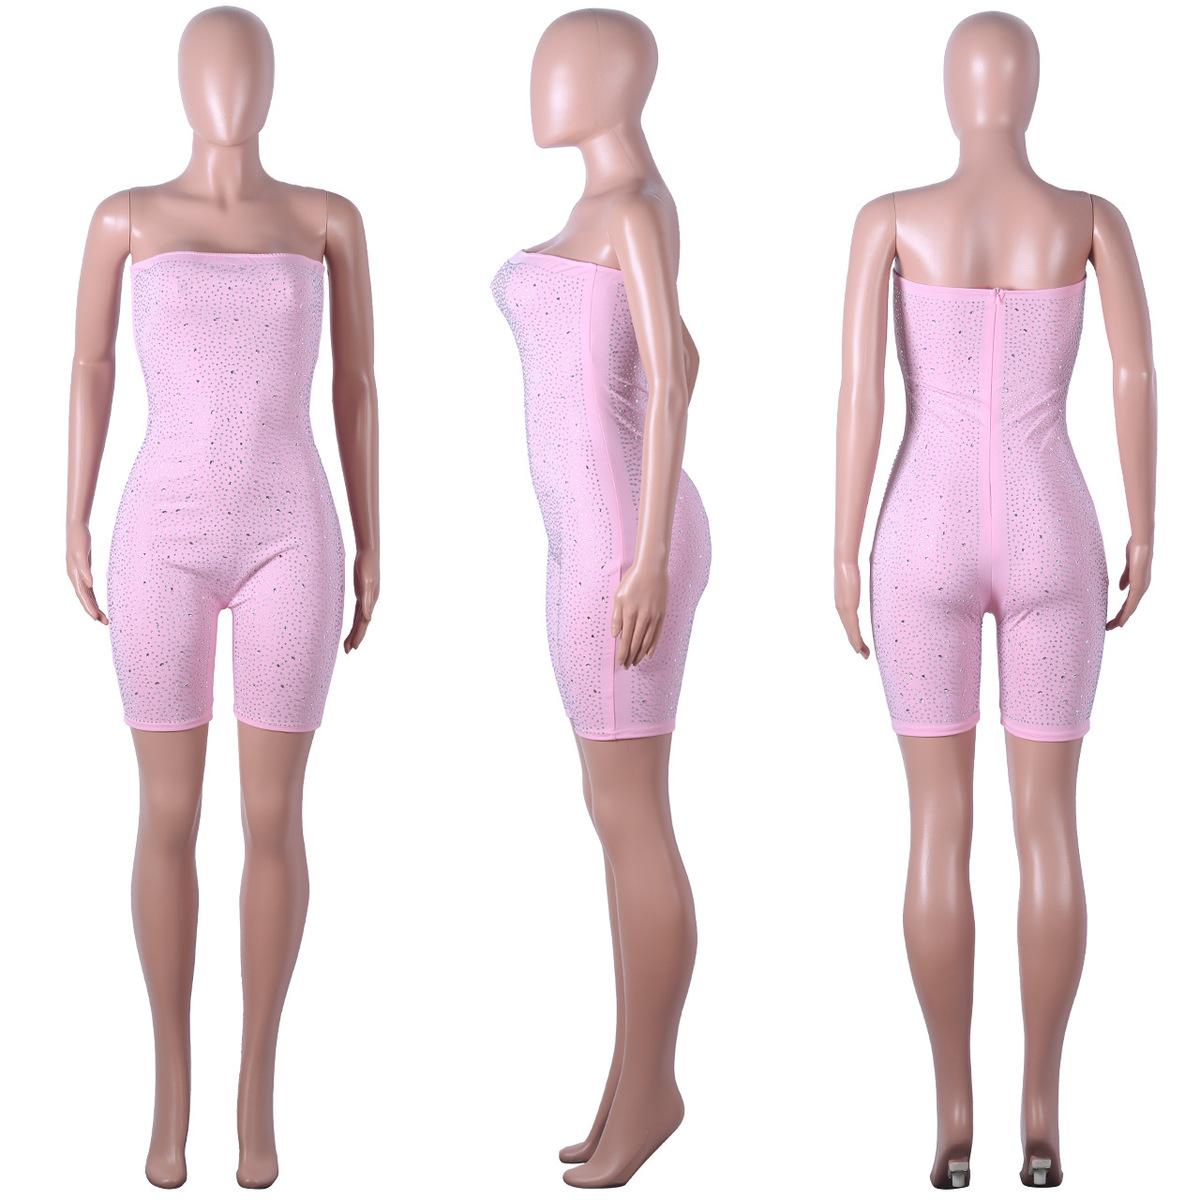 3a72efcd0f7e8 Tobinoone Pink Birthday Sequin Romper Strapless Tube Top Bike Shorts Sexy  Glitter Jumpsuit Clubwear Party Outfits for Women